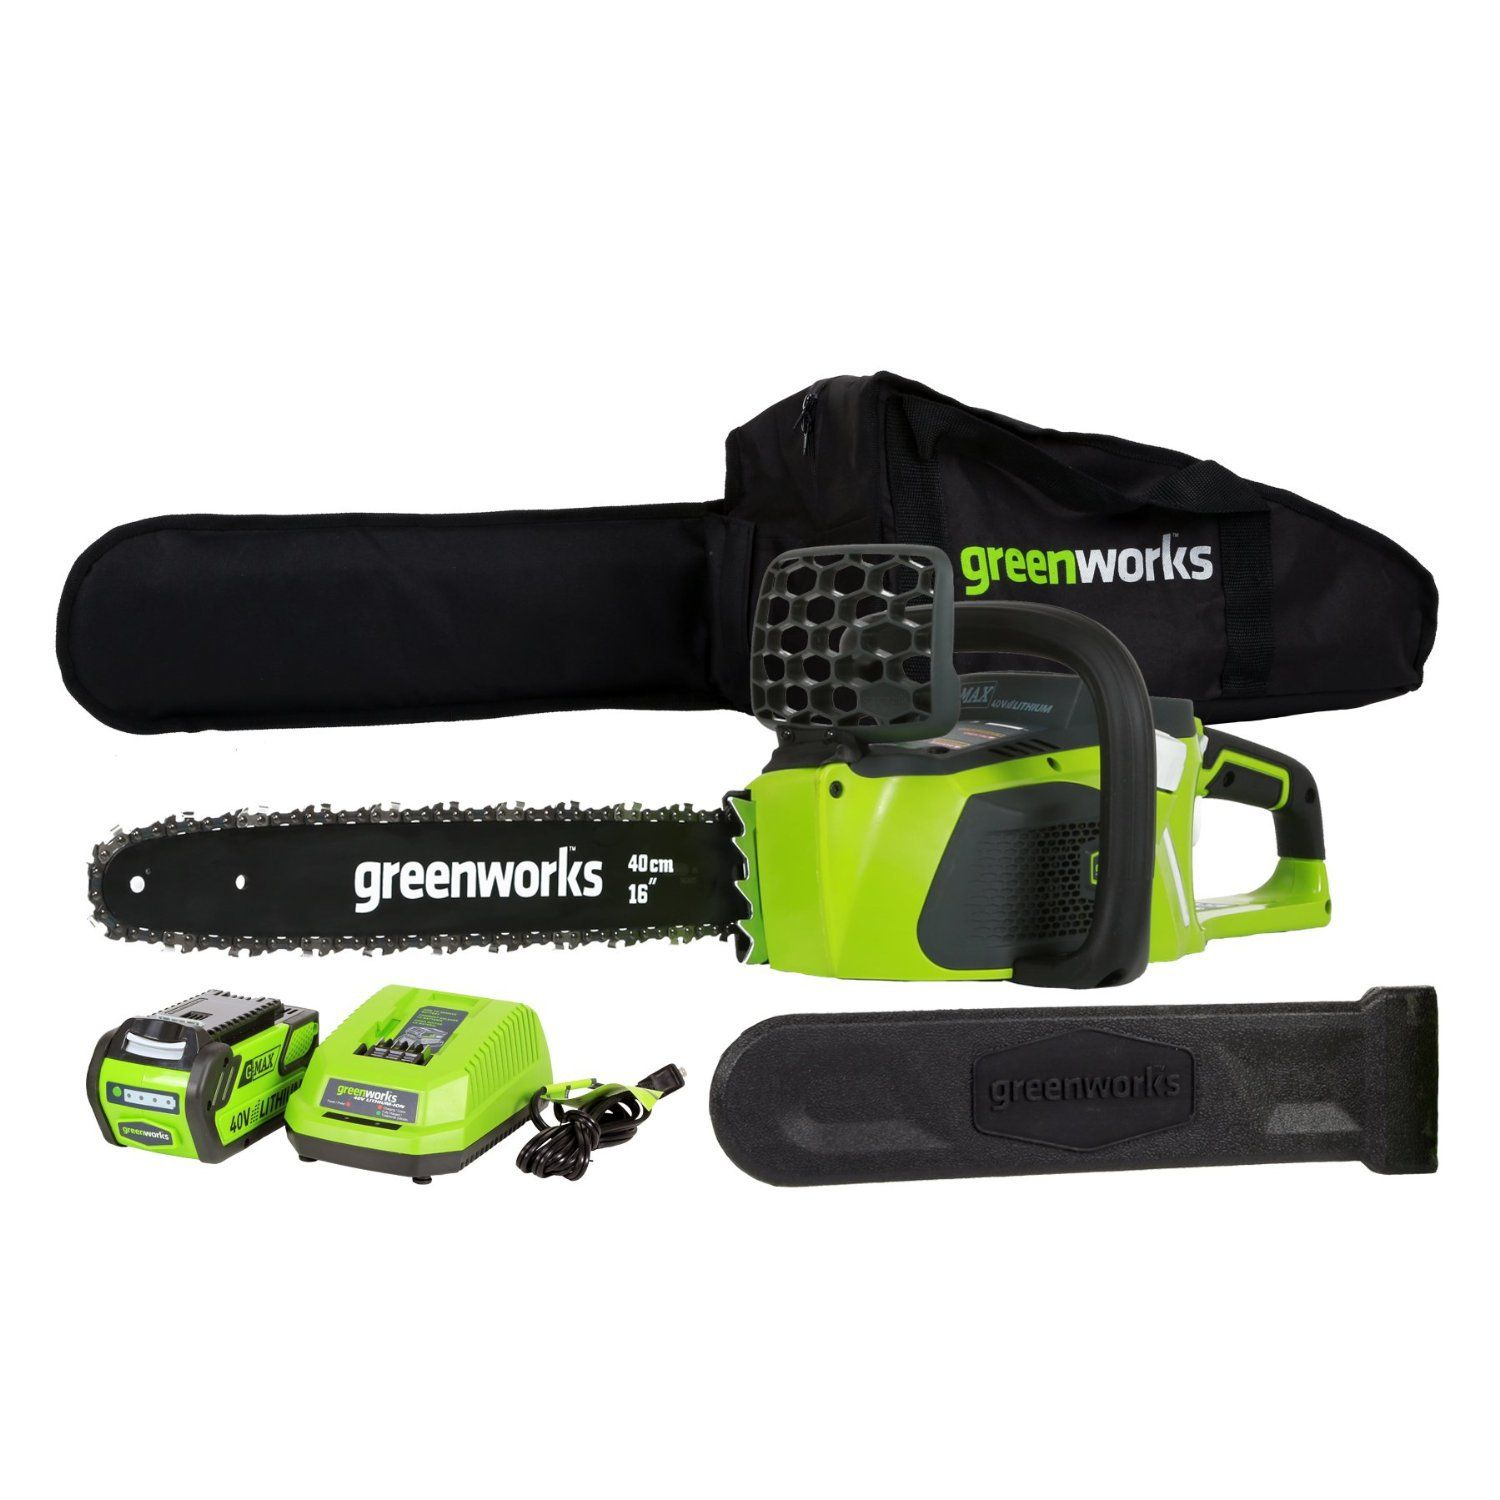 Green Works Digipro Gmax Chainsaw Cordless Chainsaw Best Electric Chainsaw Greenworks